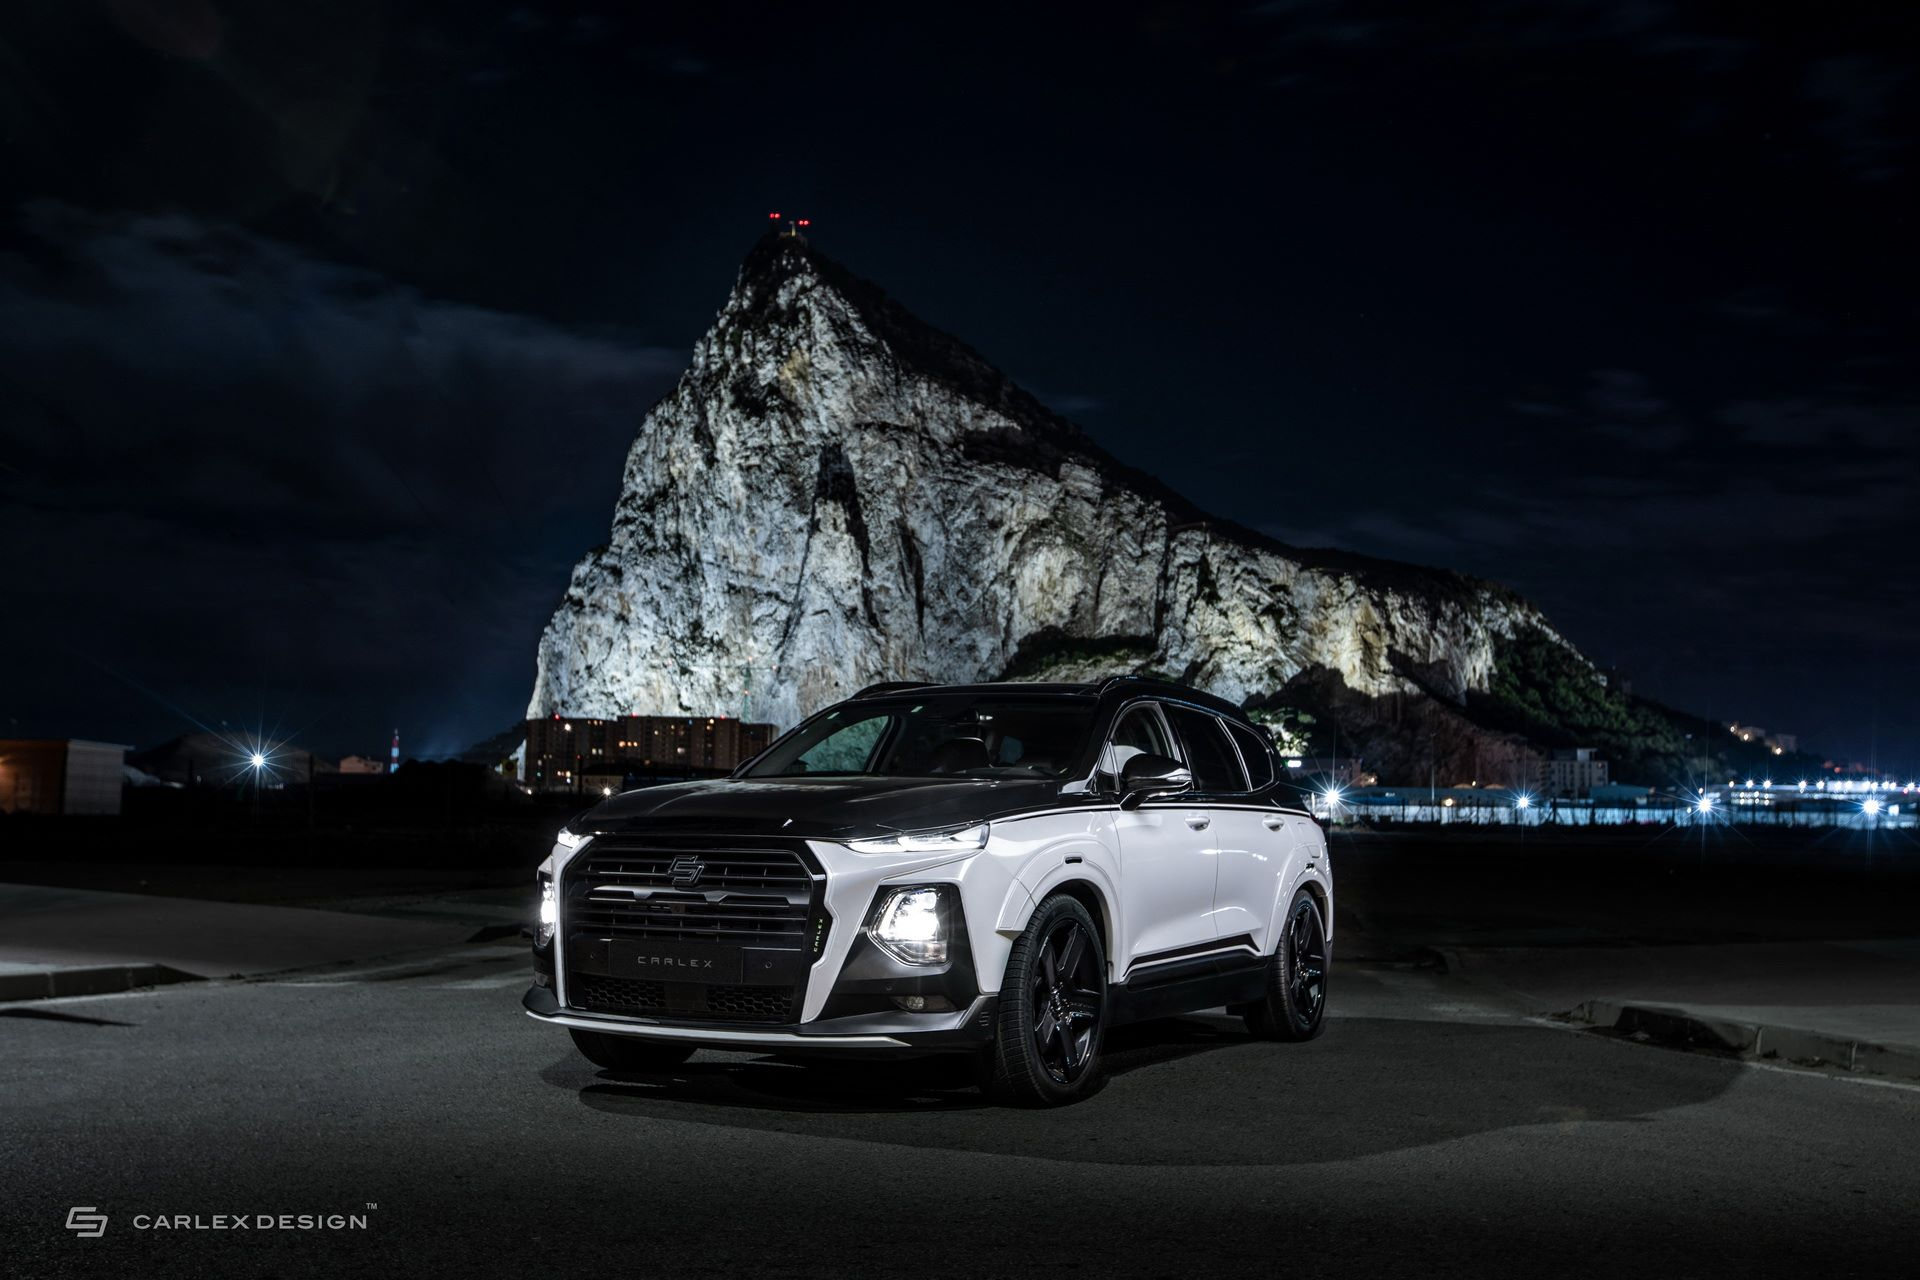 Hyundai-Santa-Fe-Urban-Edition-by-Carlex-Design-40